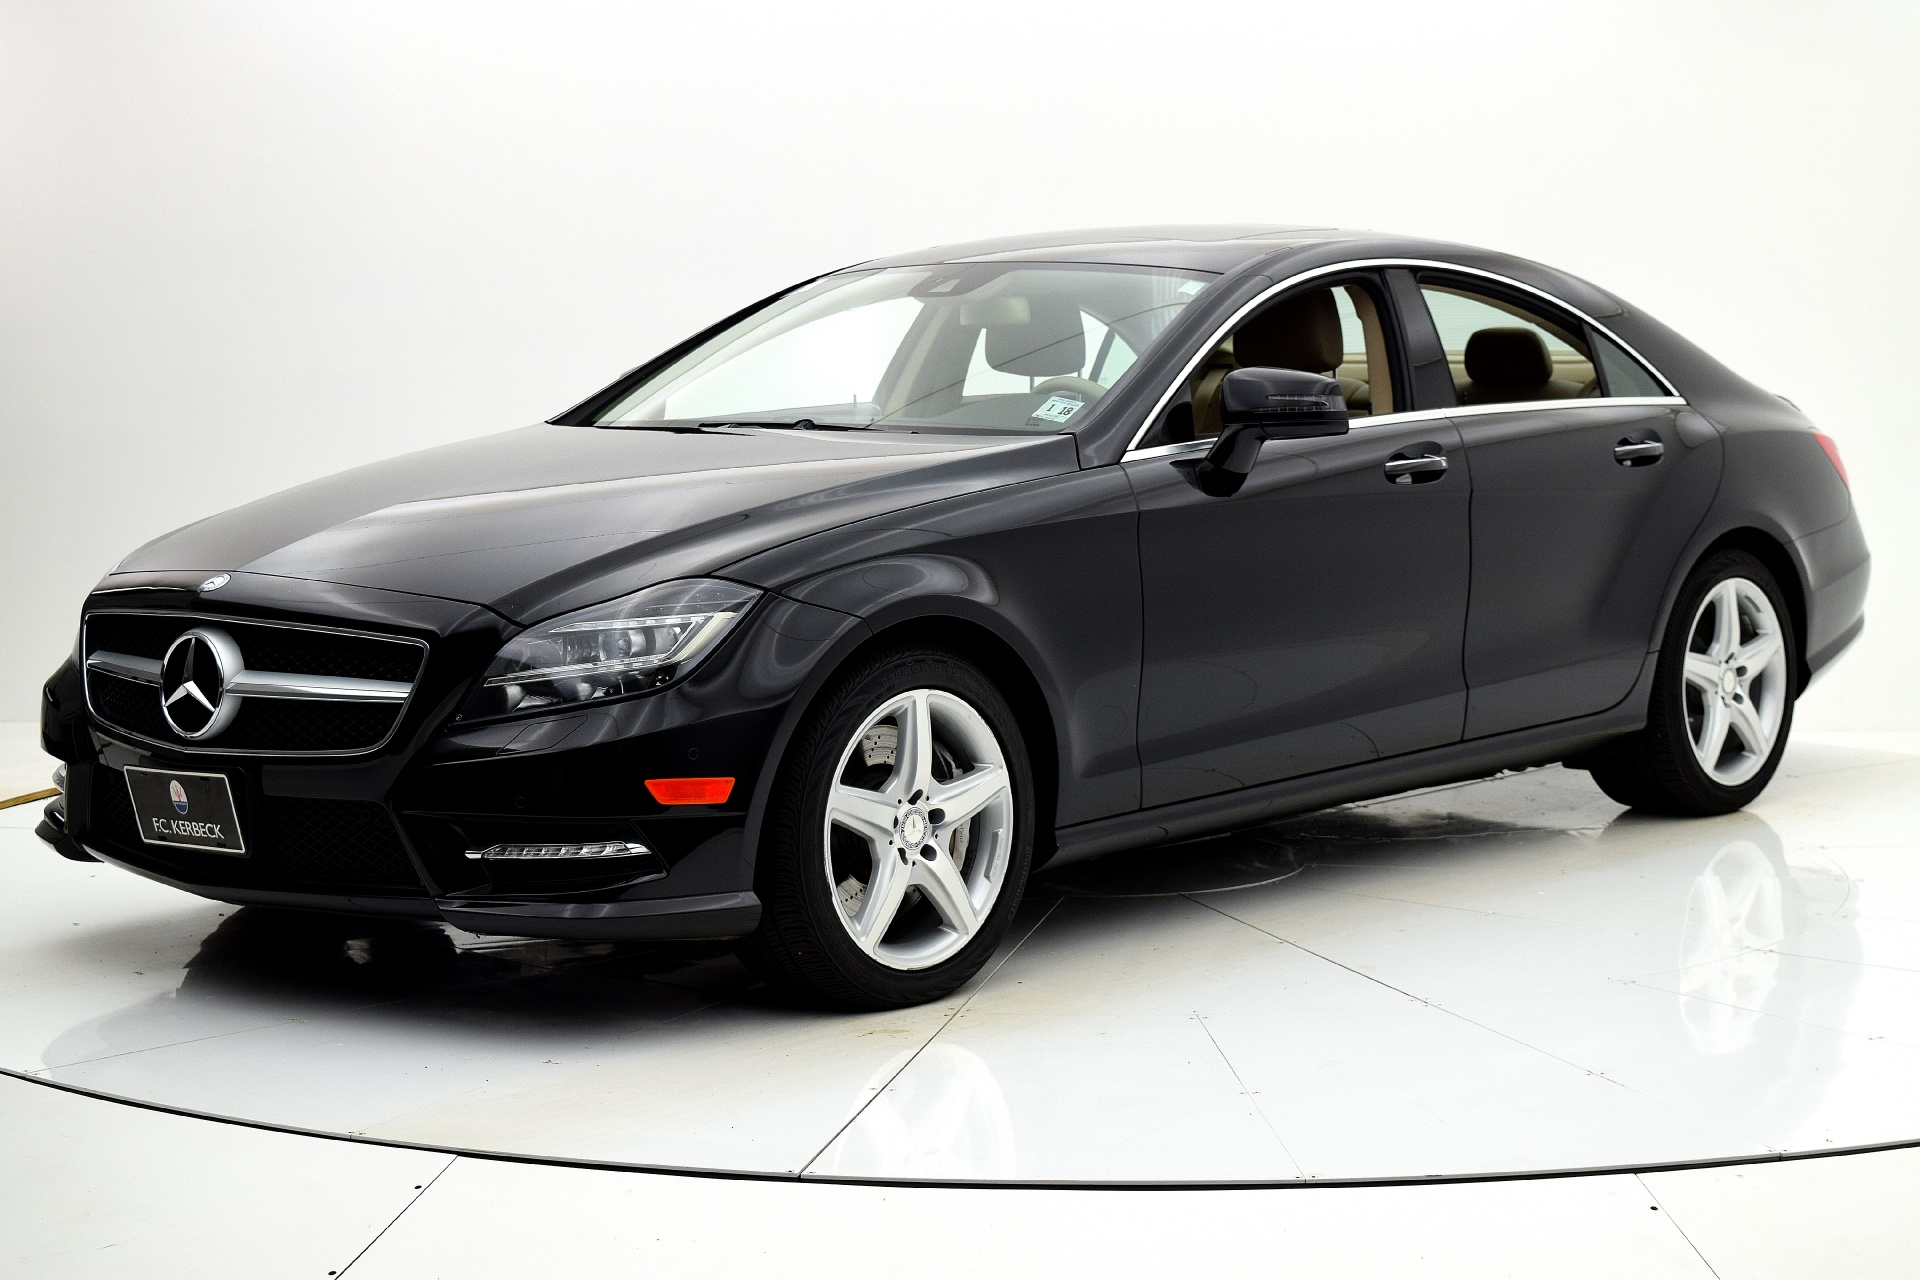 2013 mercedes benz cls550 cls class cls550 for Mercedes benz 550 cls